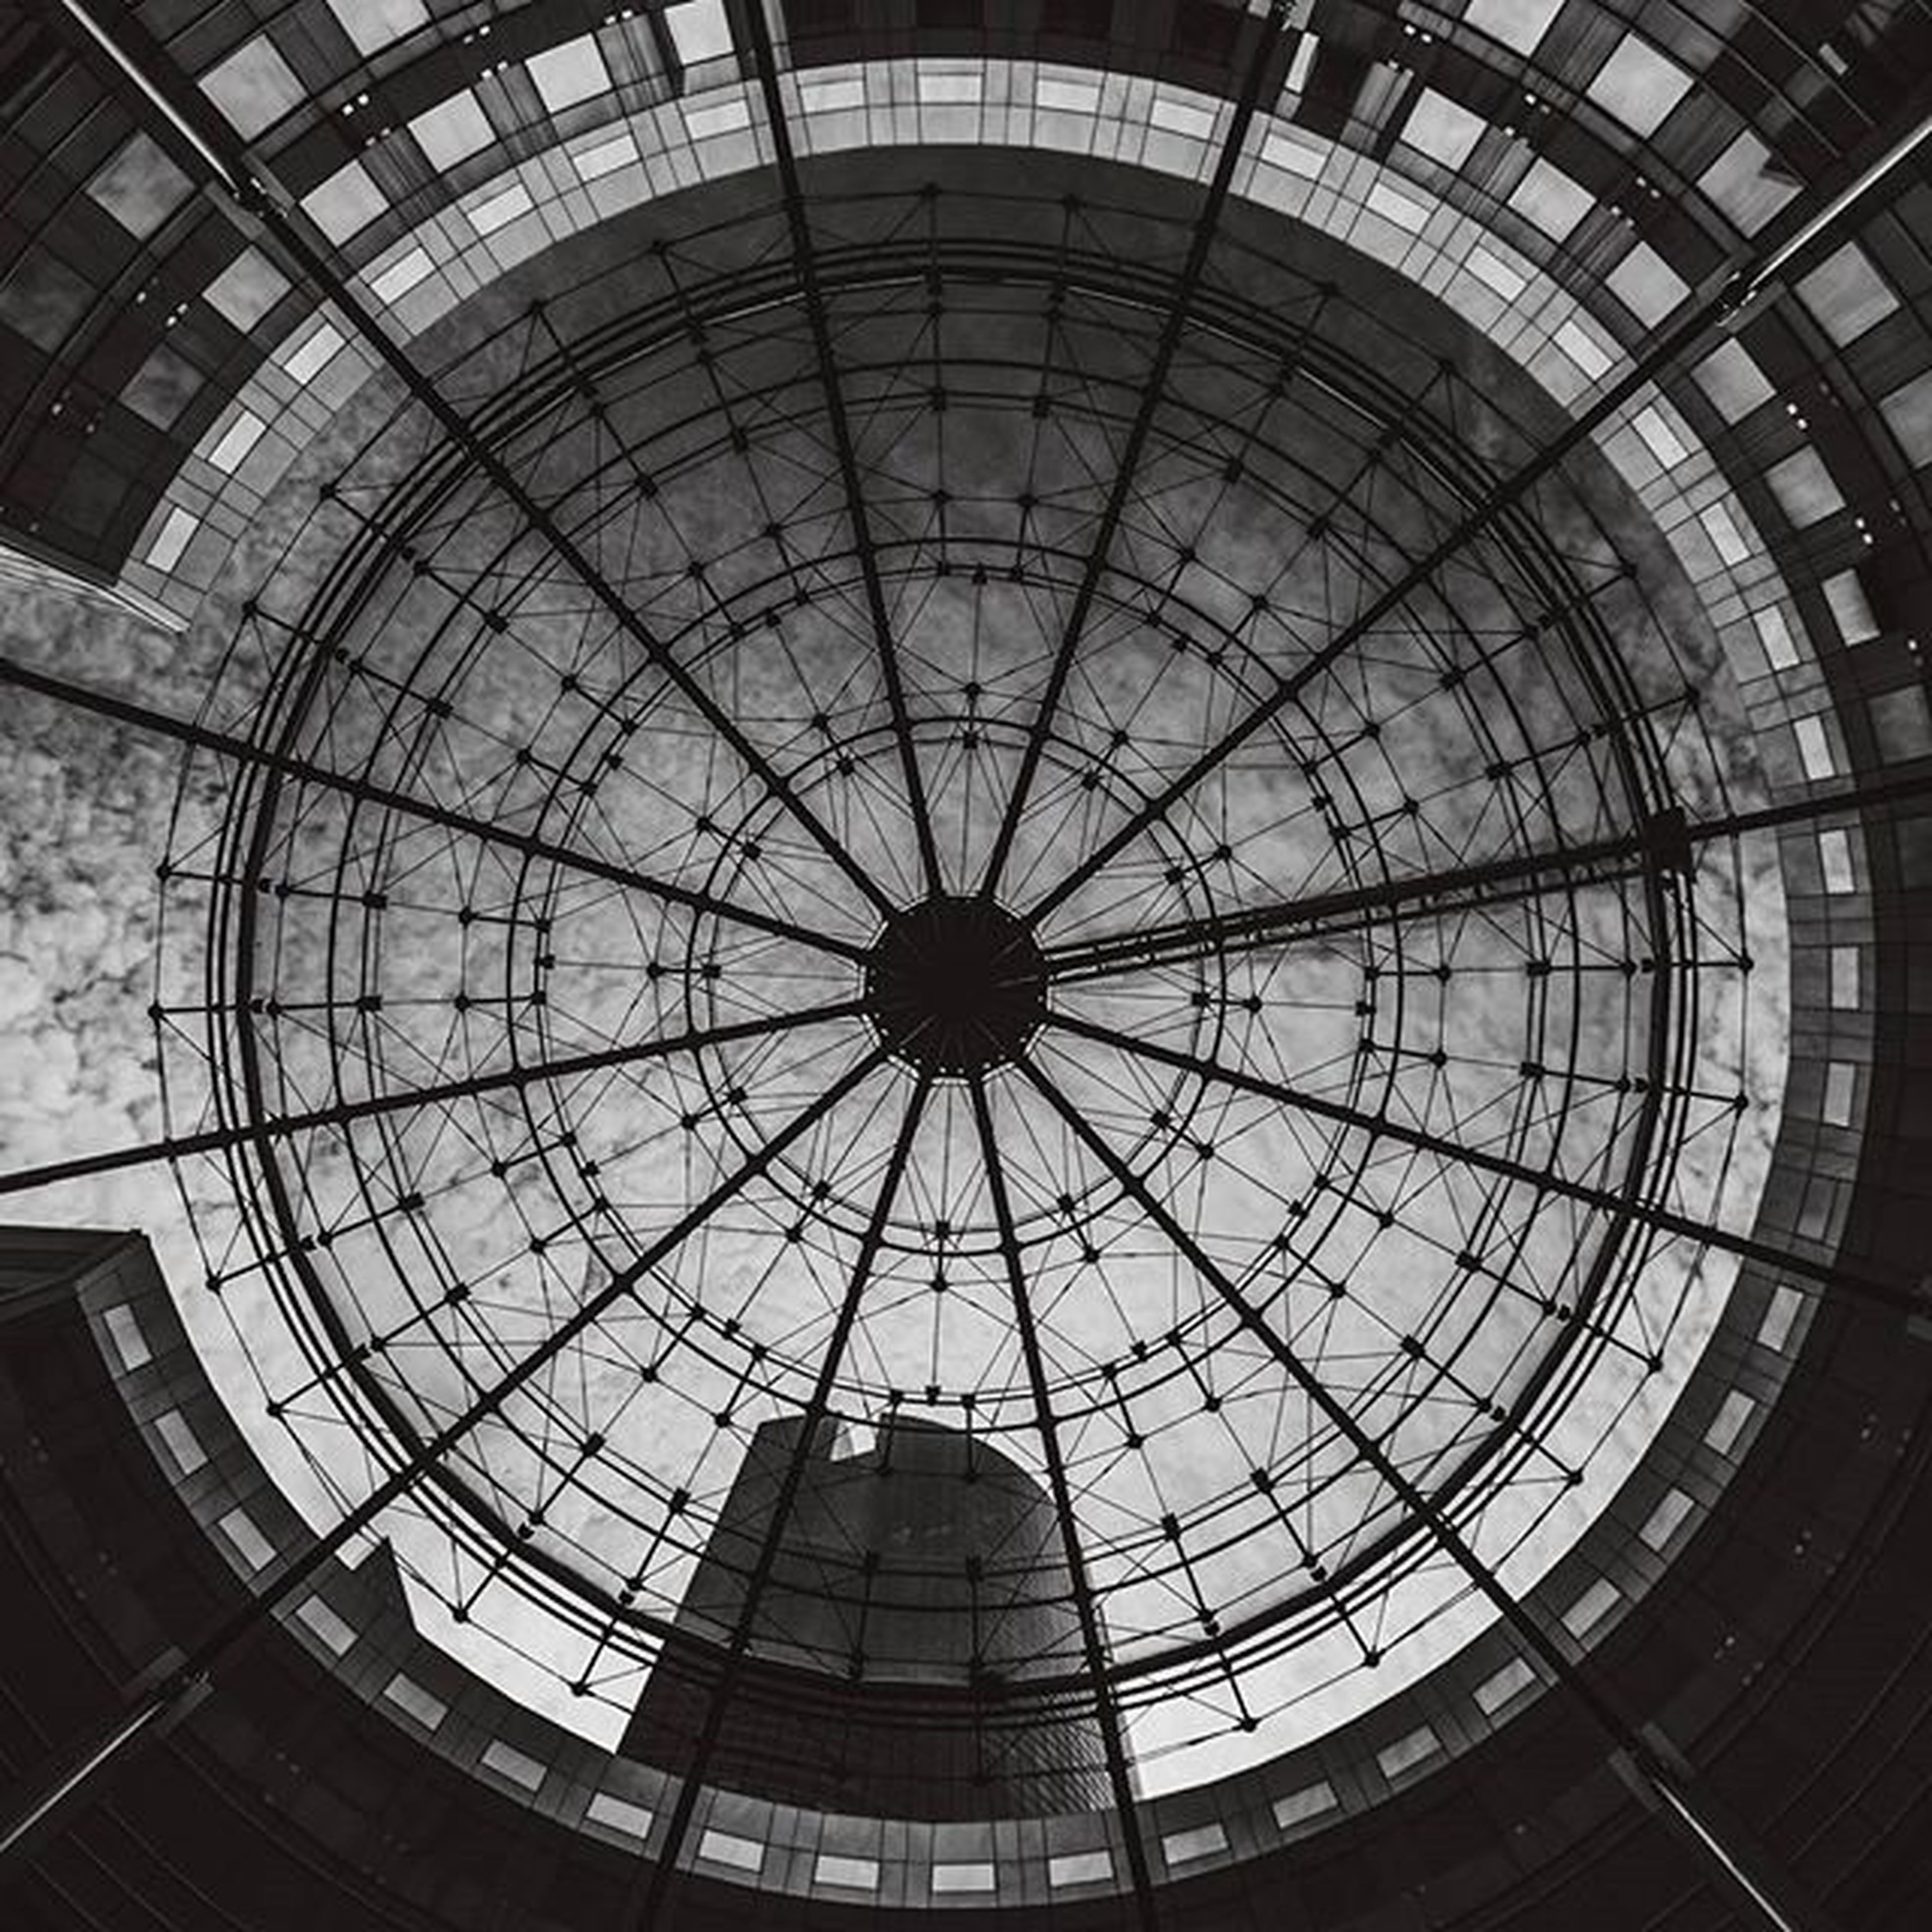 architecture, built structure, ceiling, indoors, low angle view, pattern, skylight, directly below, architectural feature, geometric shape, design, circle, full frame, glass - material, modern, backgrounds, building exterior, building, no people, day